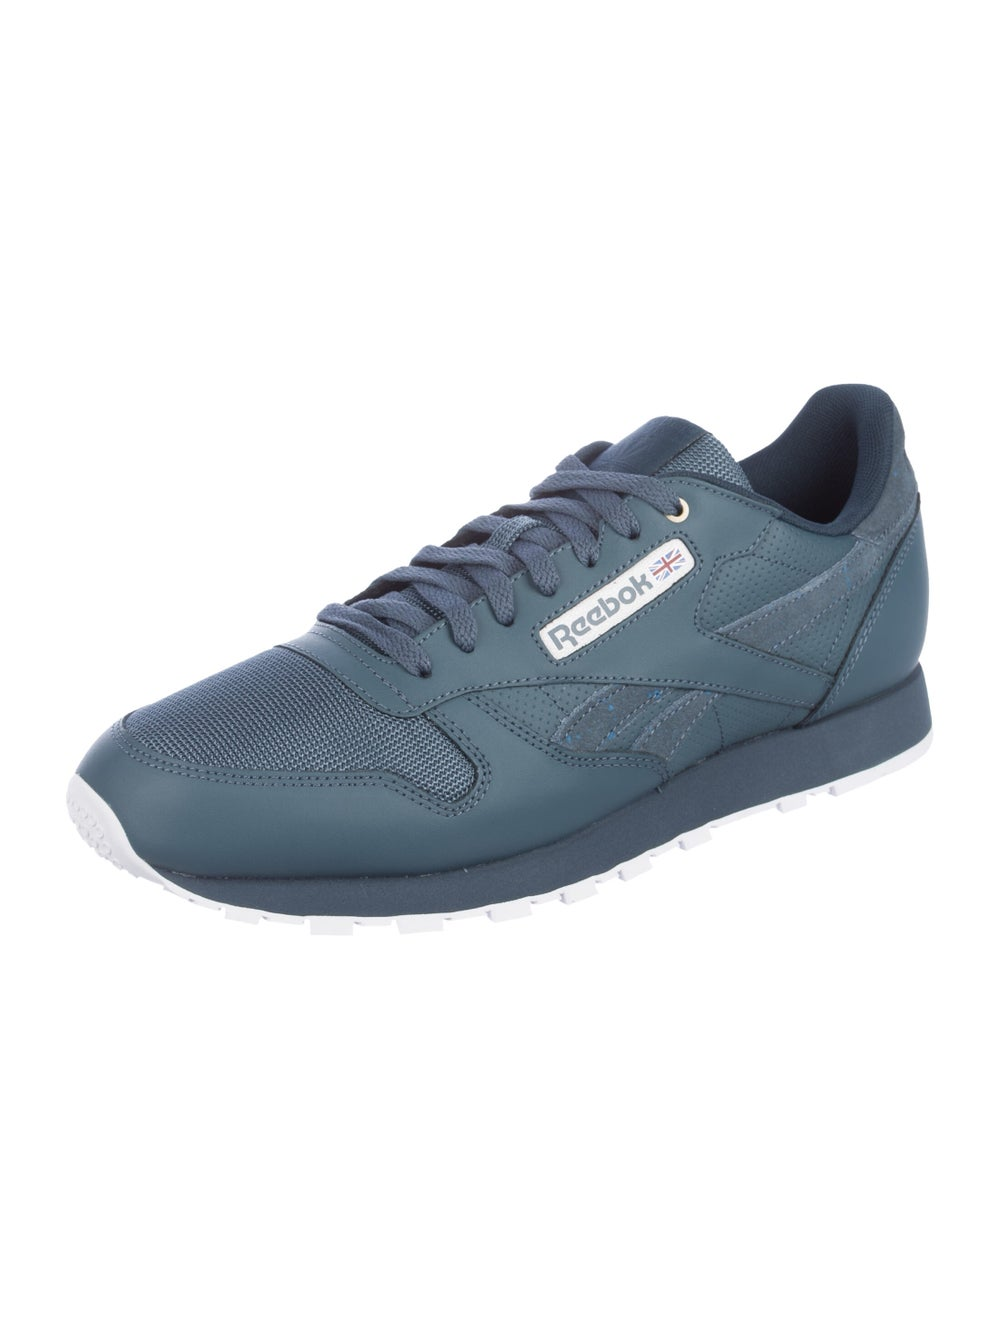 Reebok Classic Leather Sneakers w/ Tags - image 2